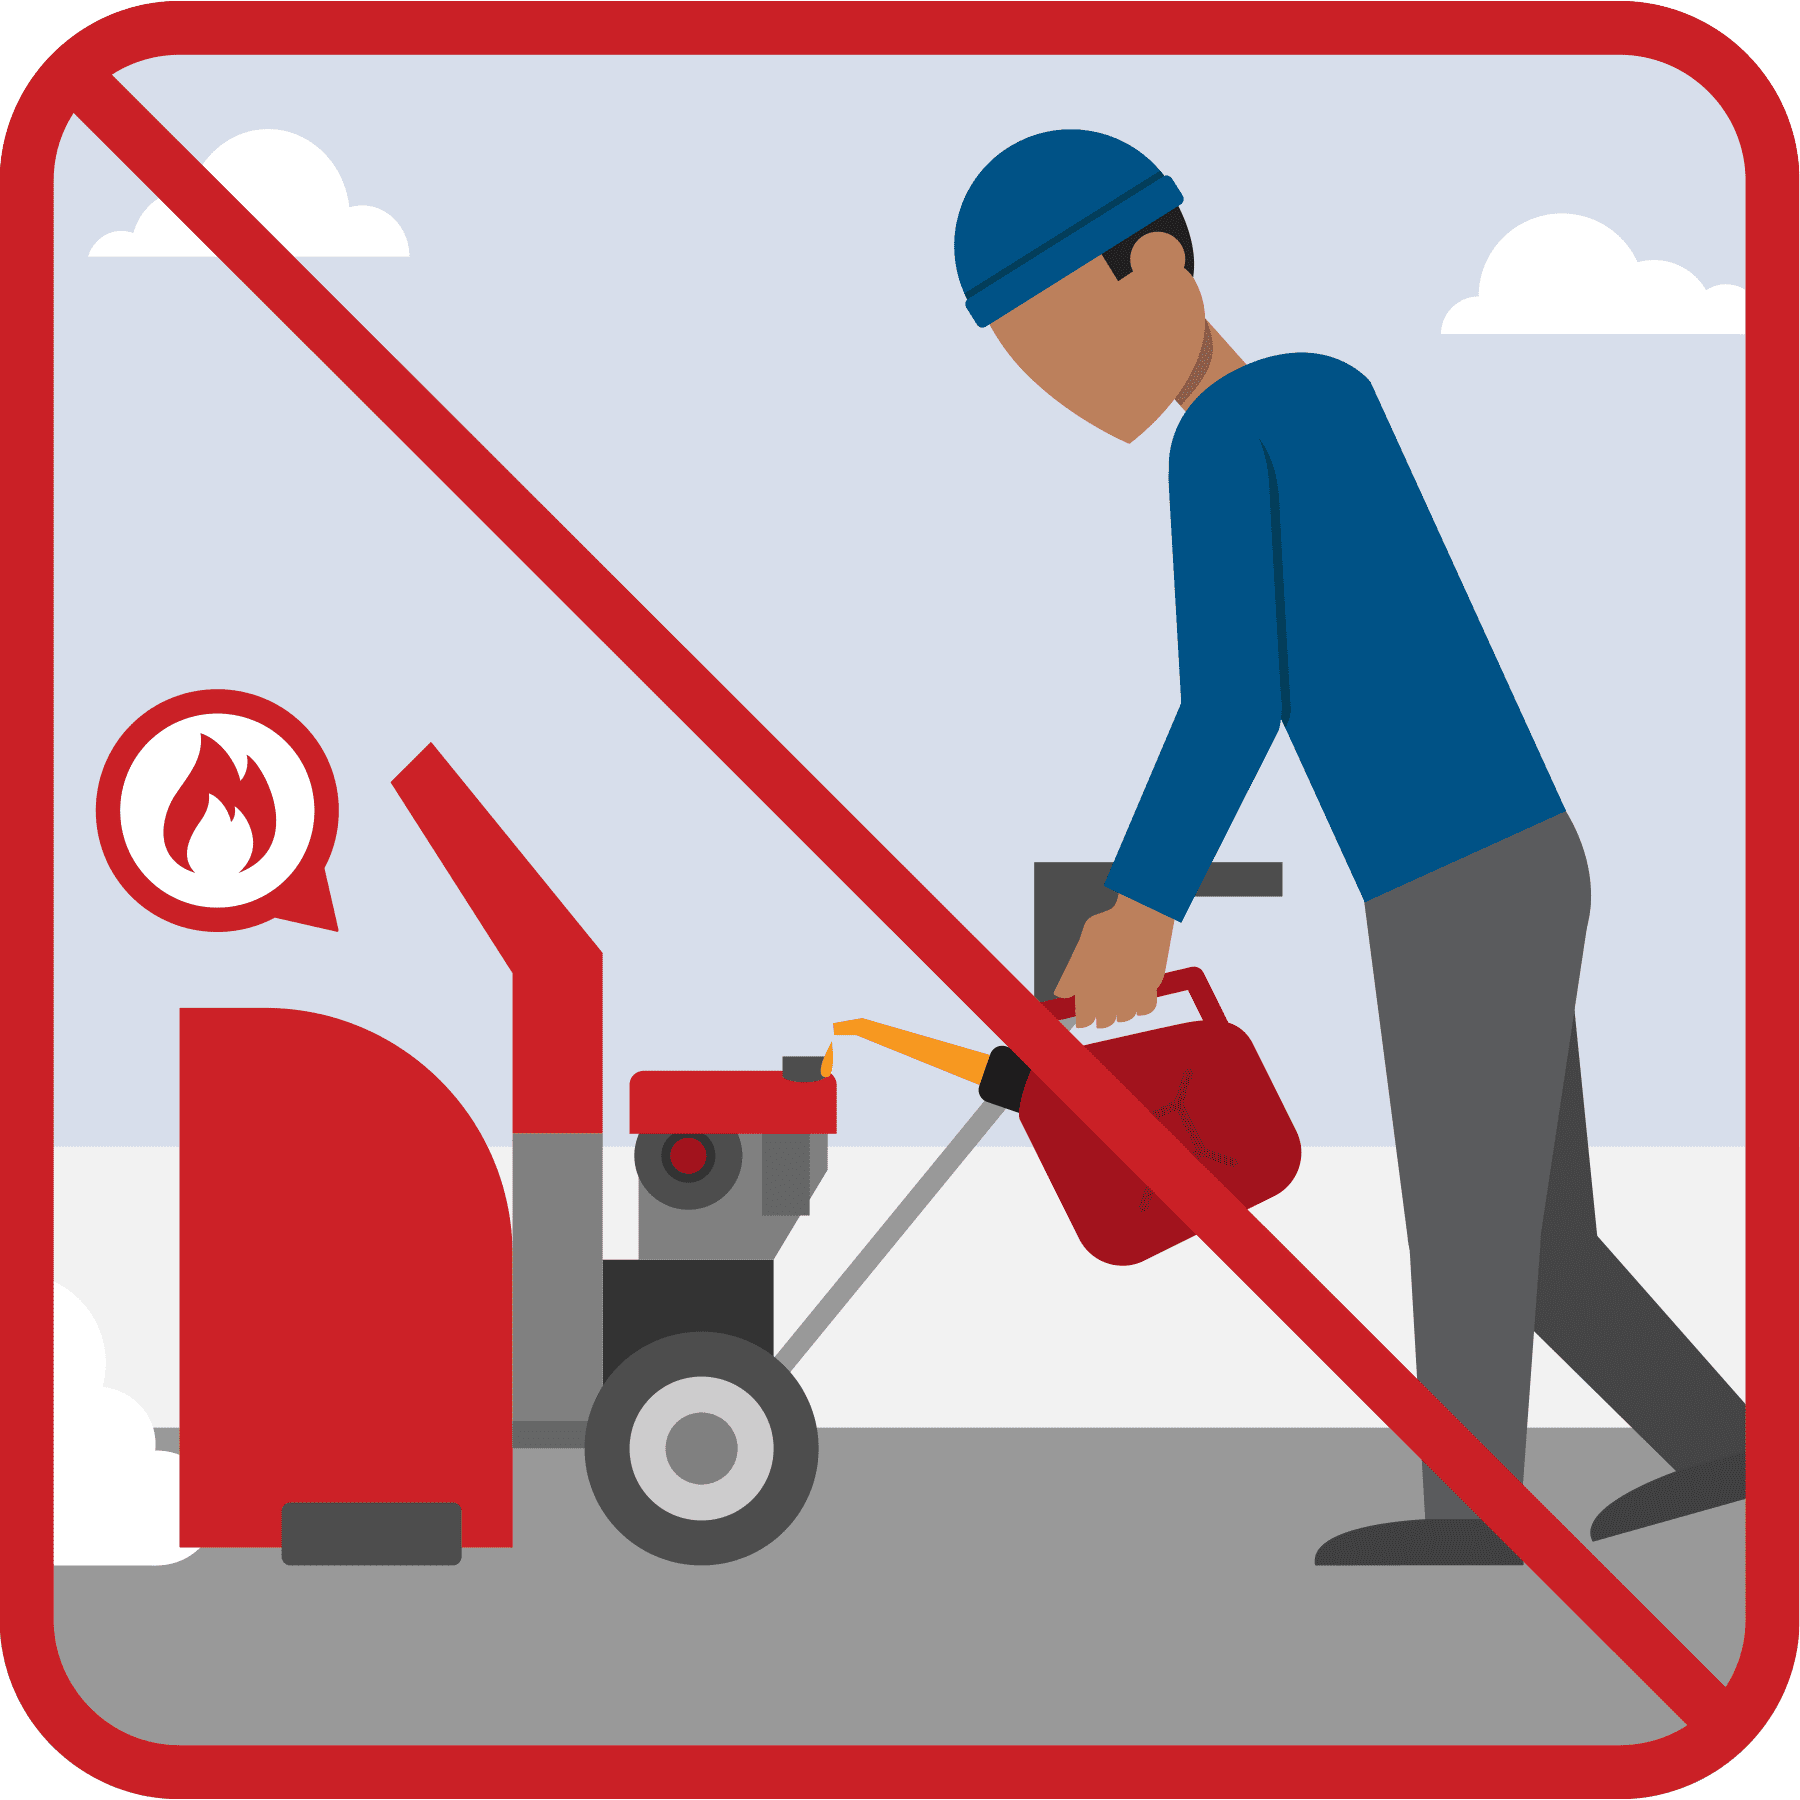 A man is fueling a hot snow blower. A red line is drawn across the illustration.